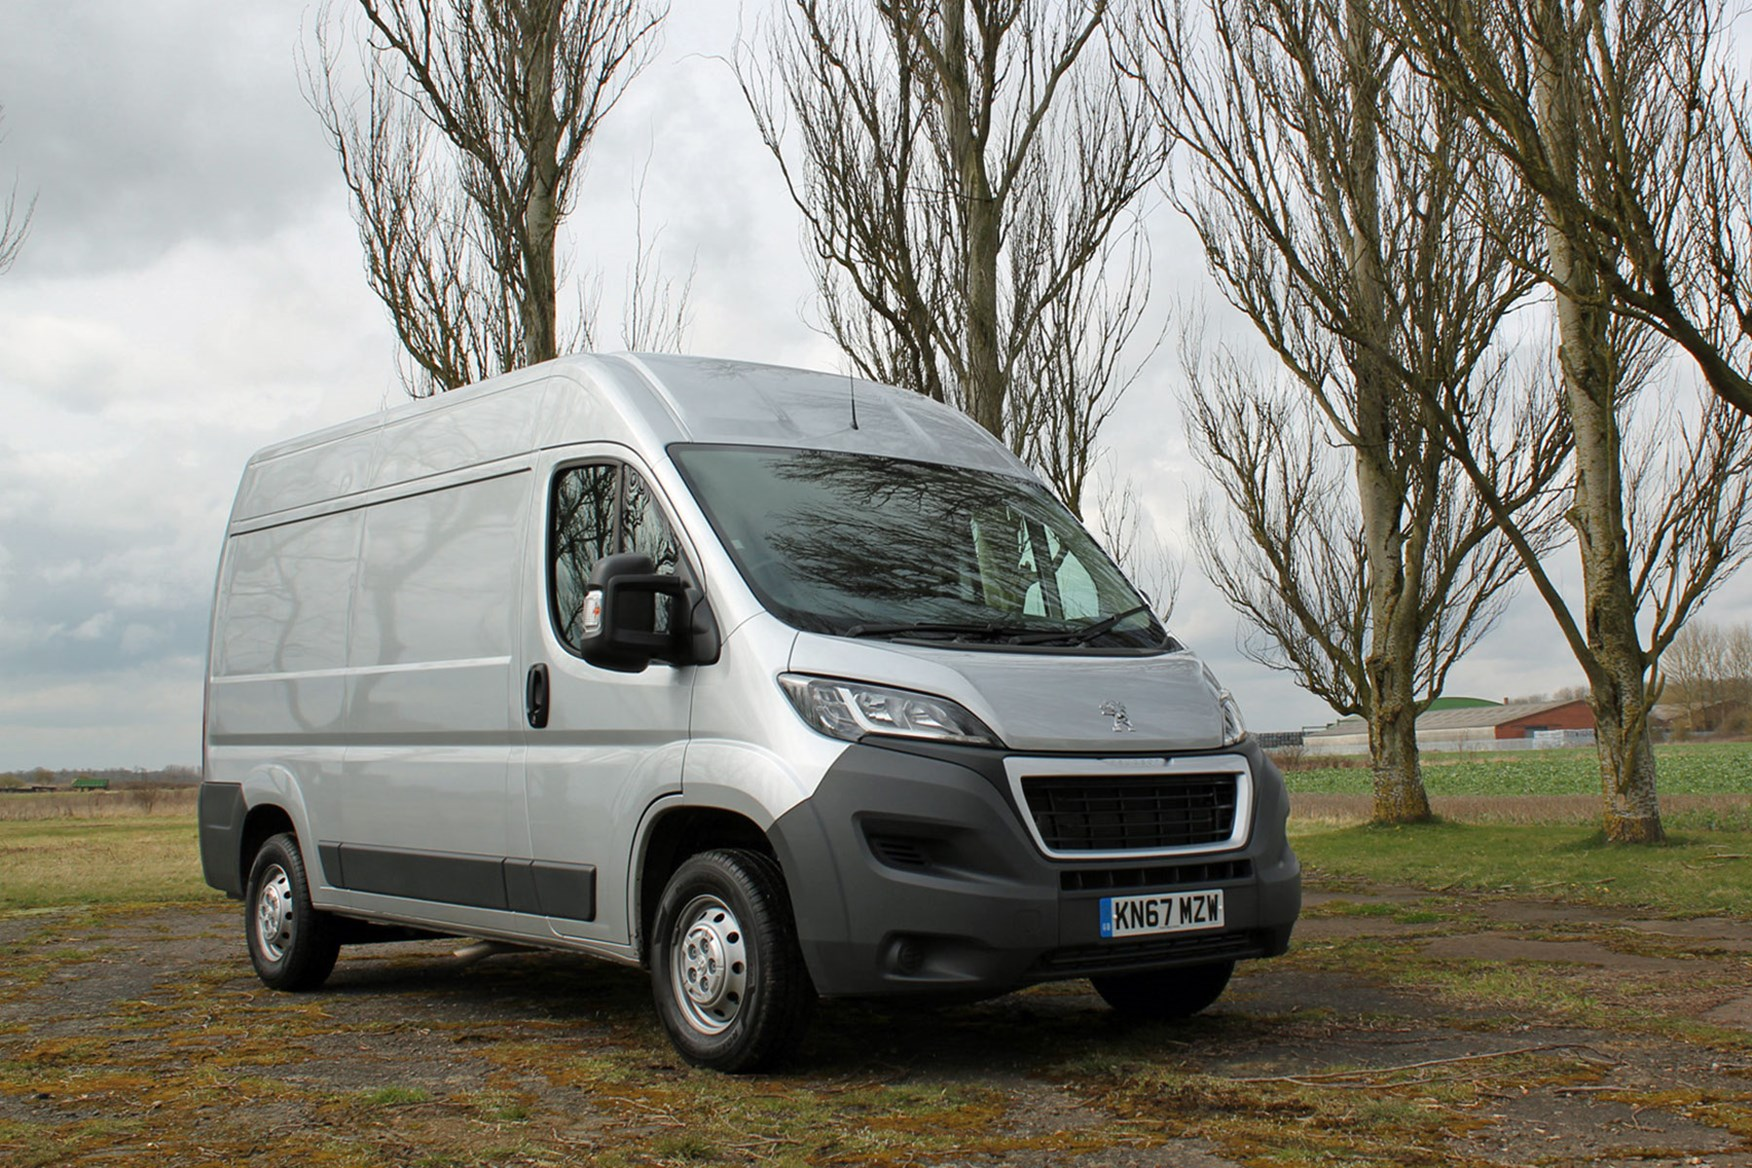 Silver 2017 Peugeot Boxer front view